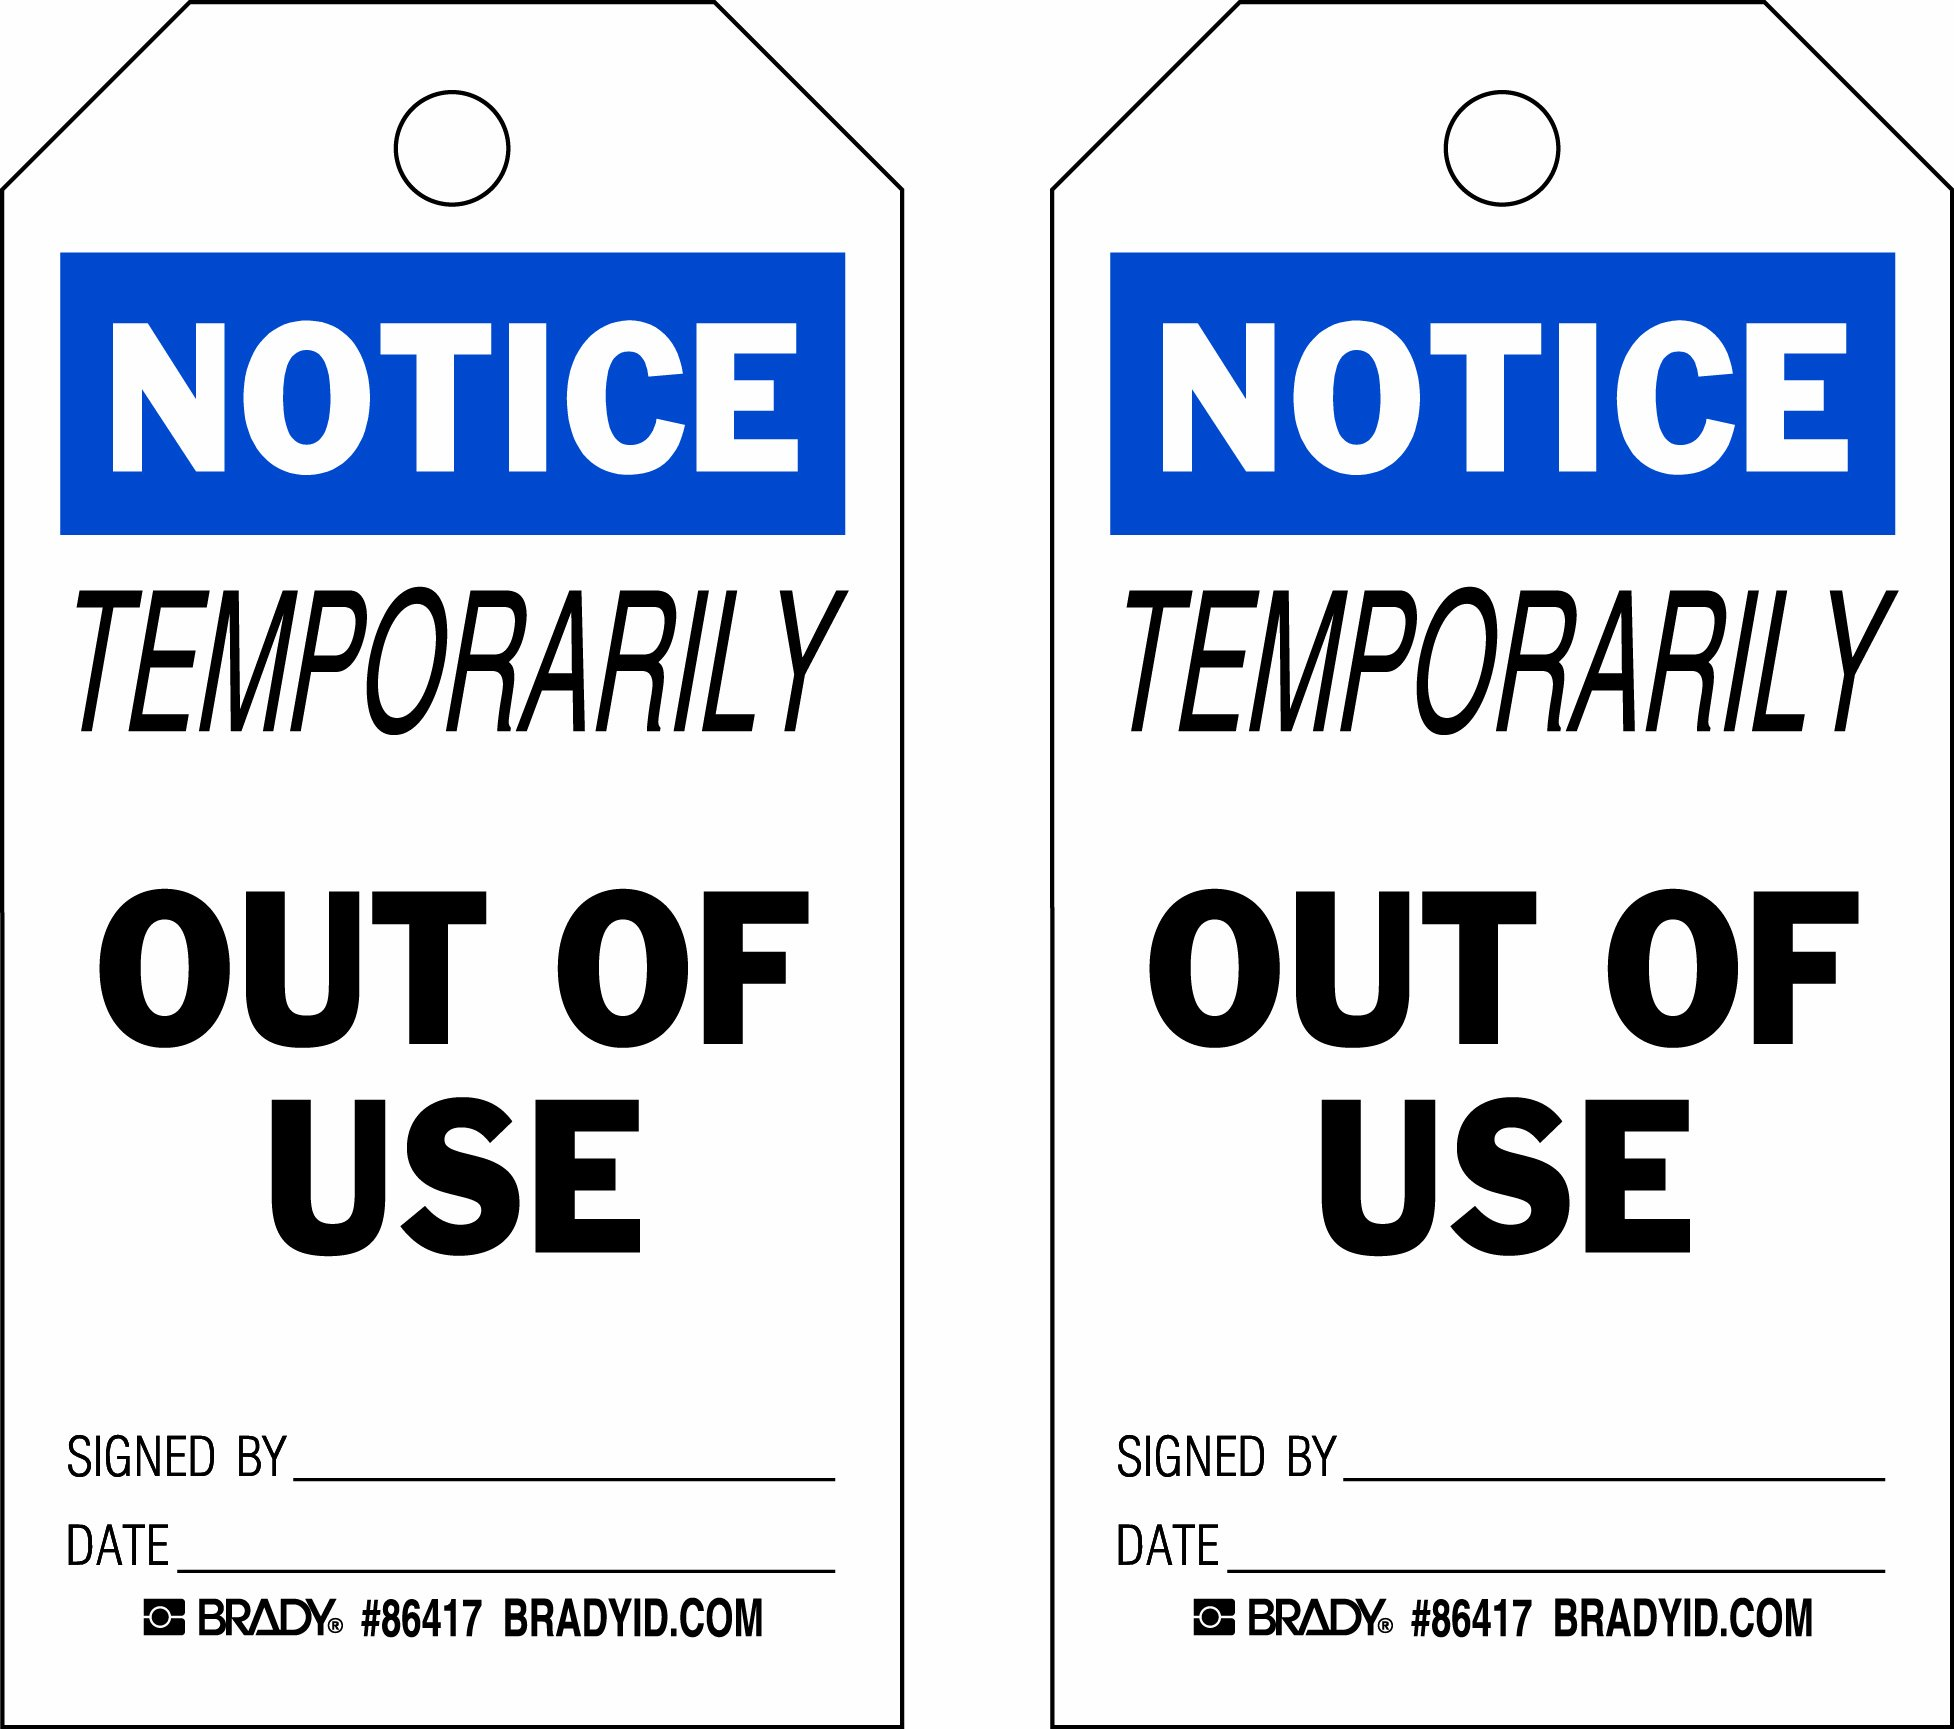 Brady  86417 5 3/4'' Height x 3'' Width, Heavy Duty Polyester (B-837), Black/Blue on White Accident Prevention Tags (10 Tags) by Brady